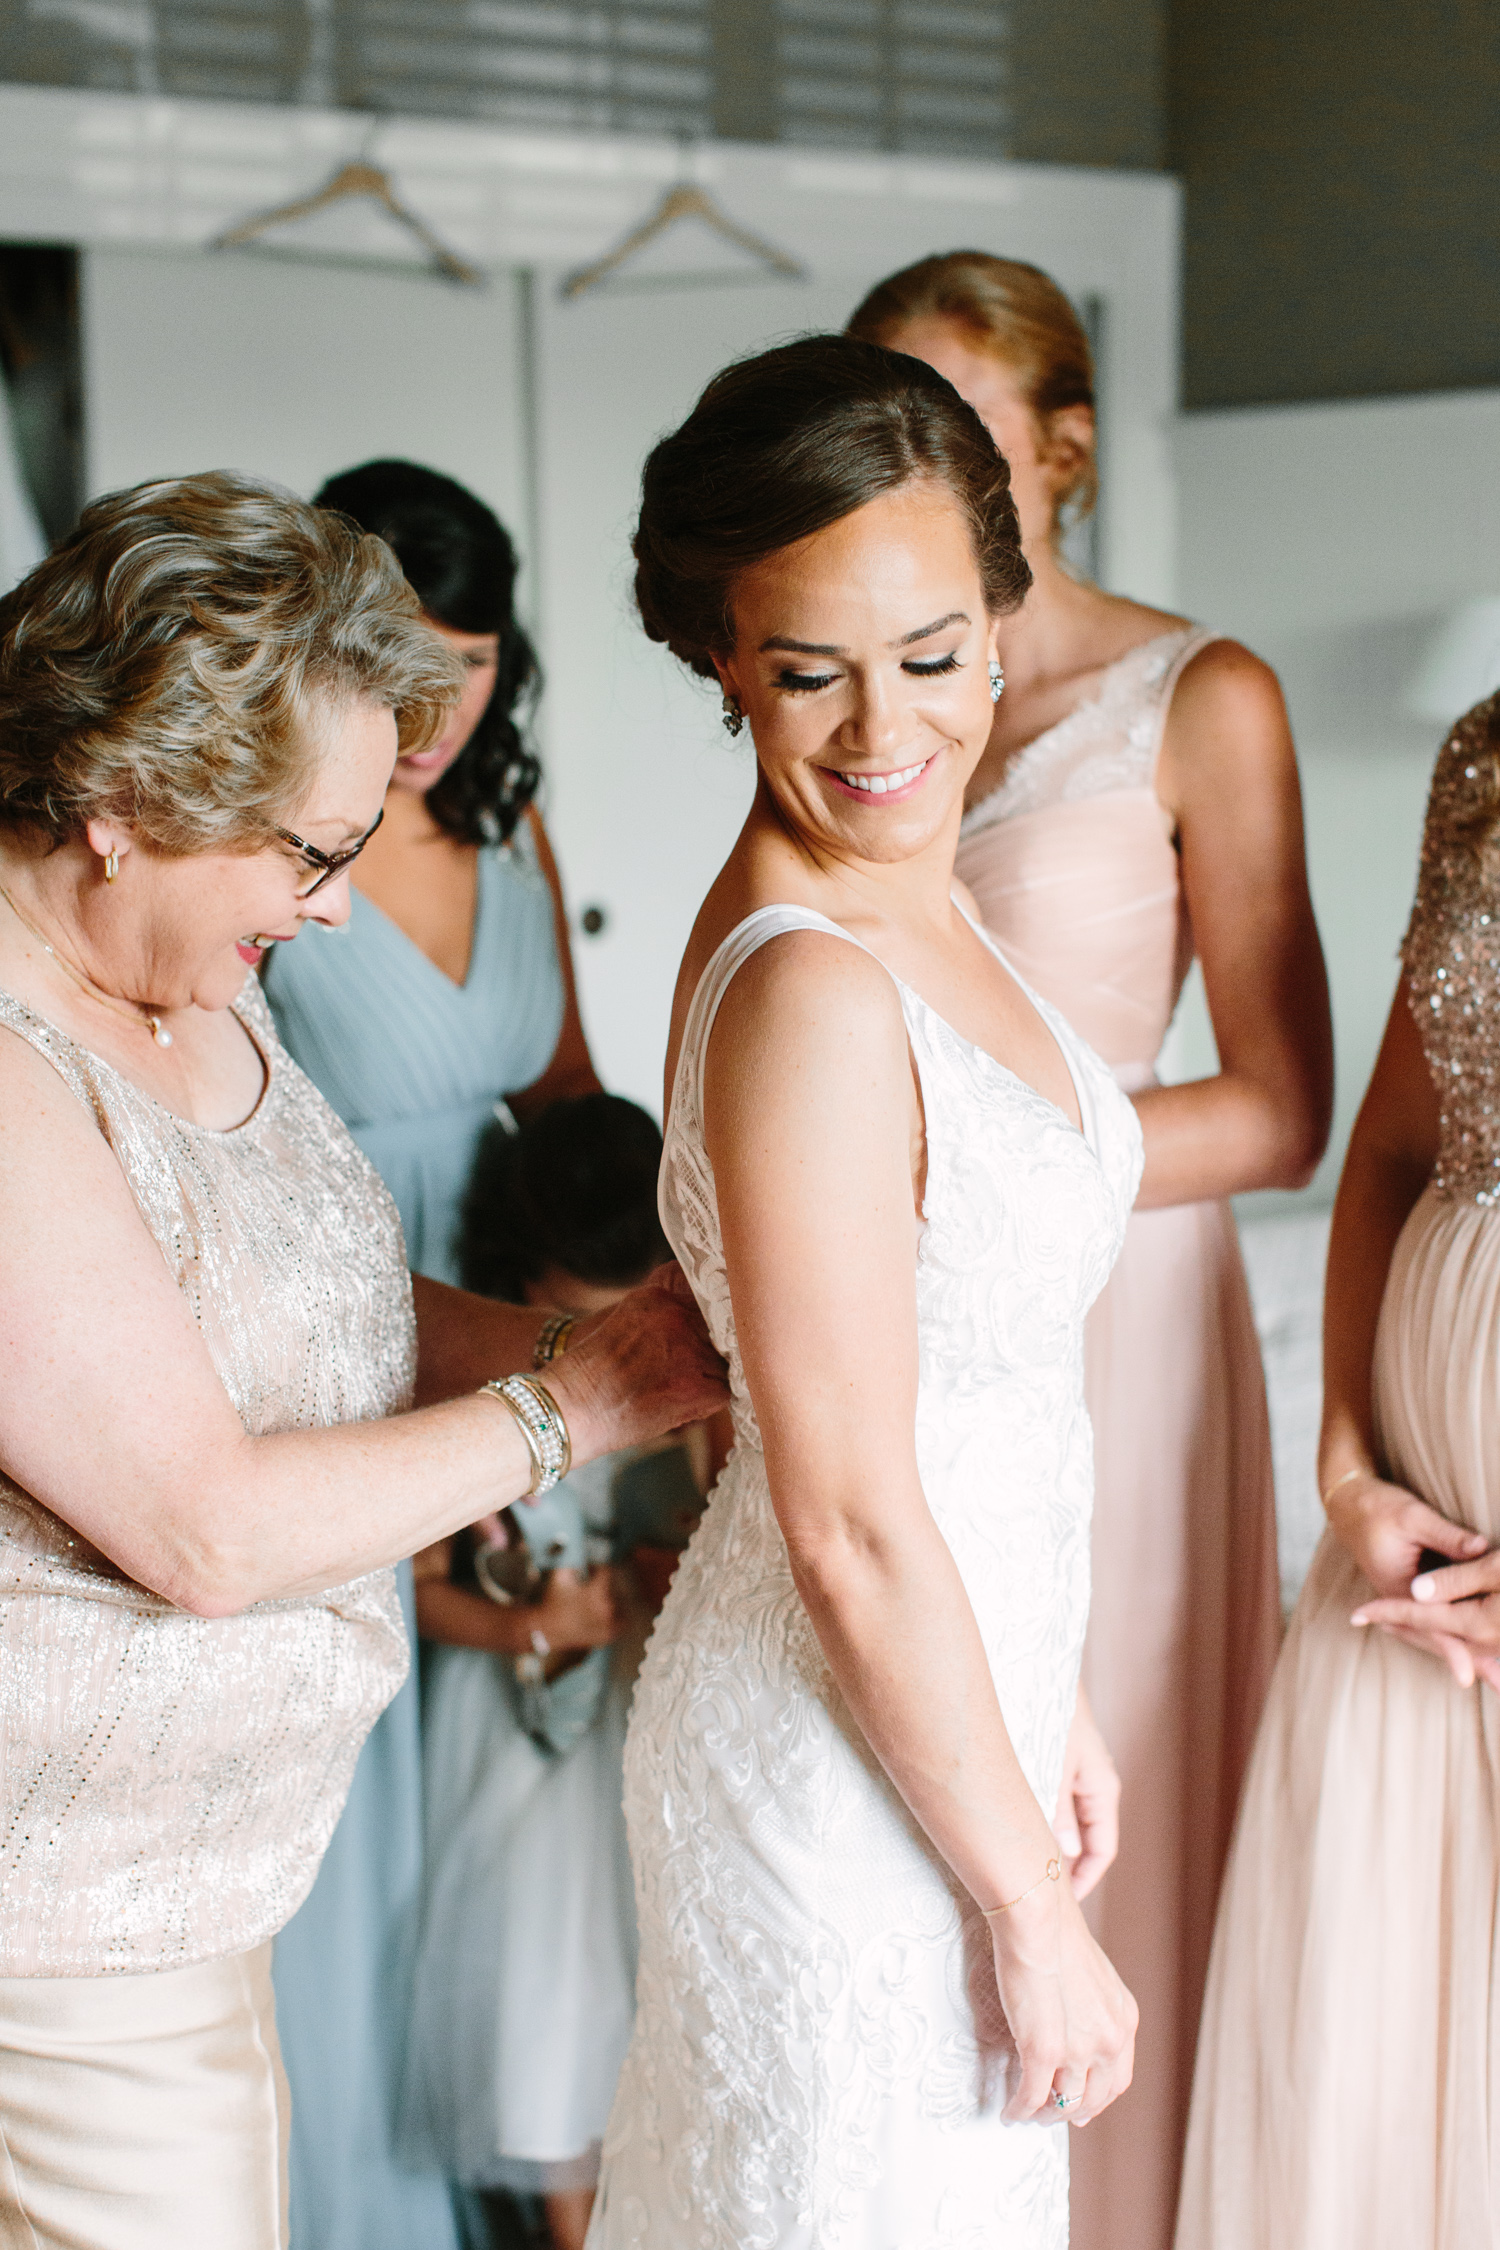 Mom & Bride // Tennessee Photographer // Suzy Collins Photography // The Olde Farm